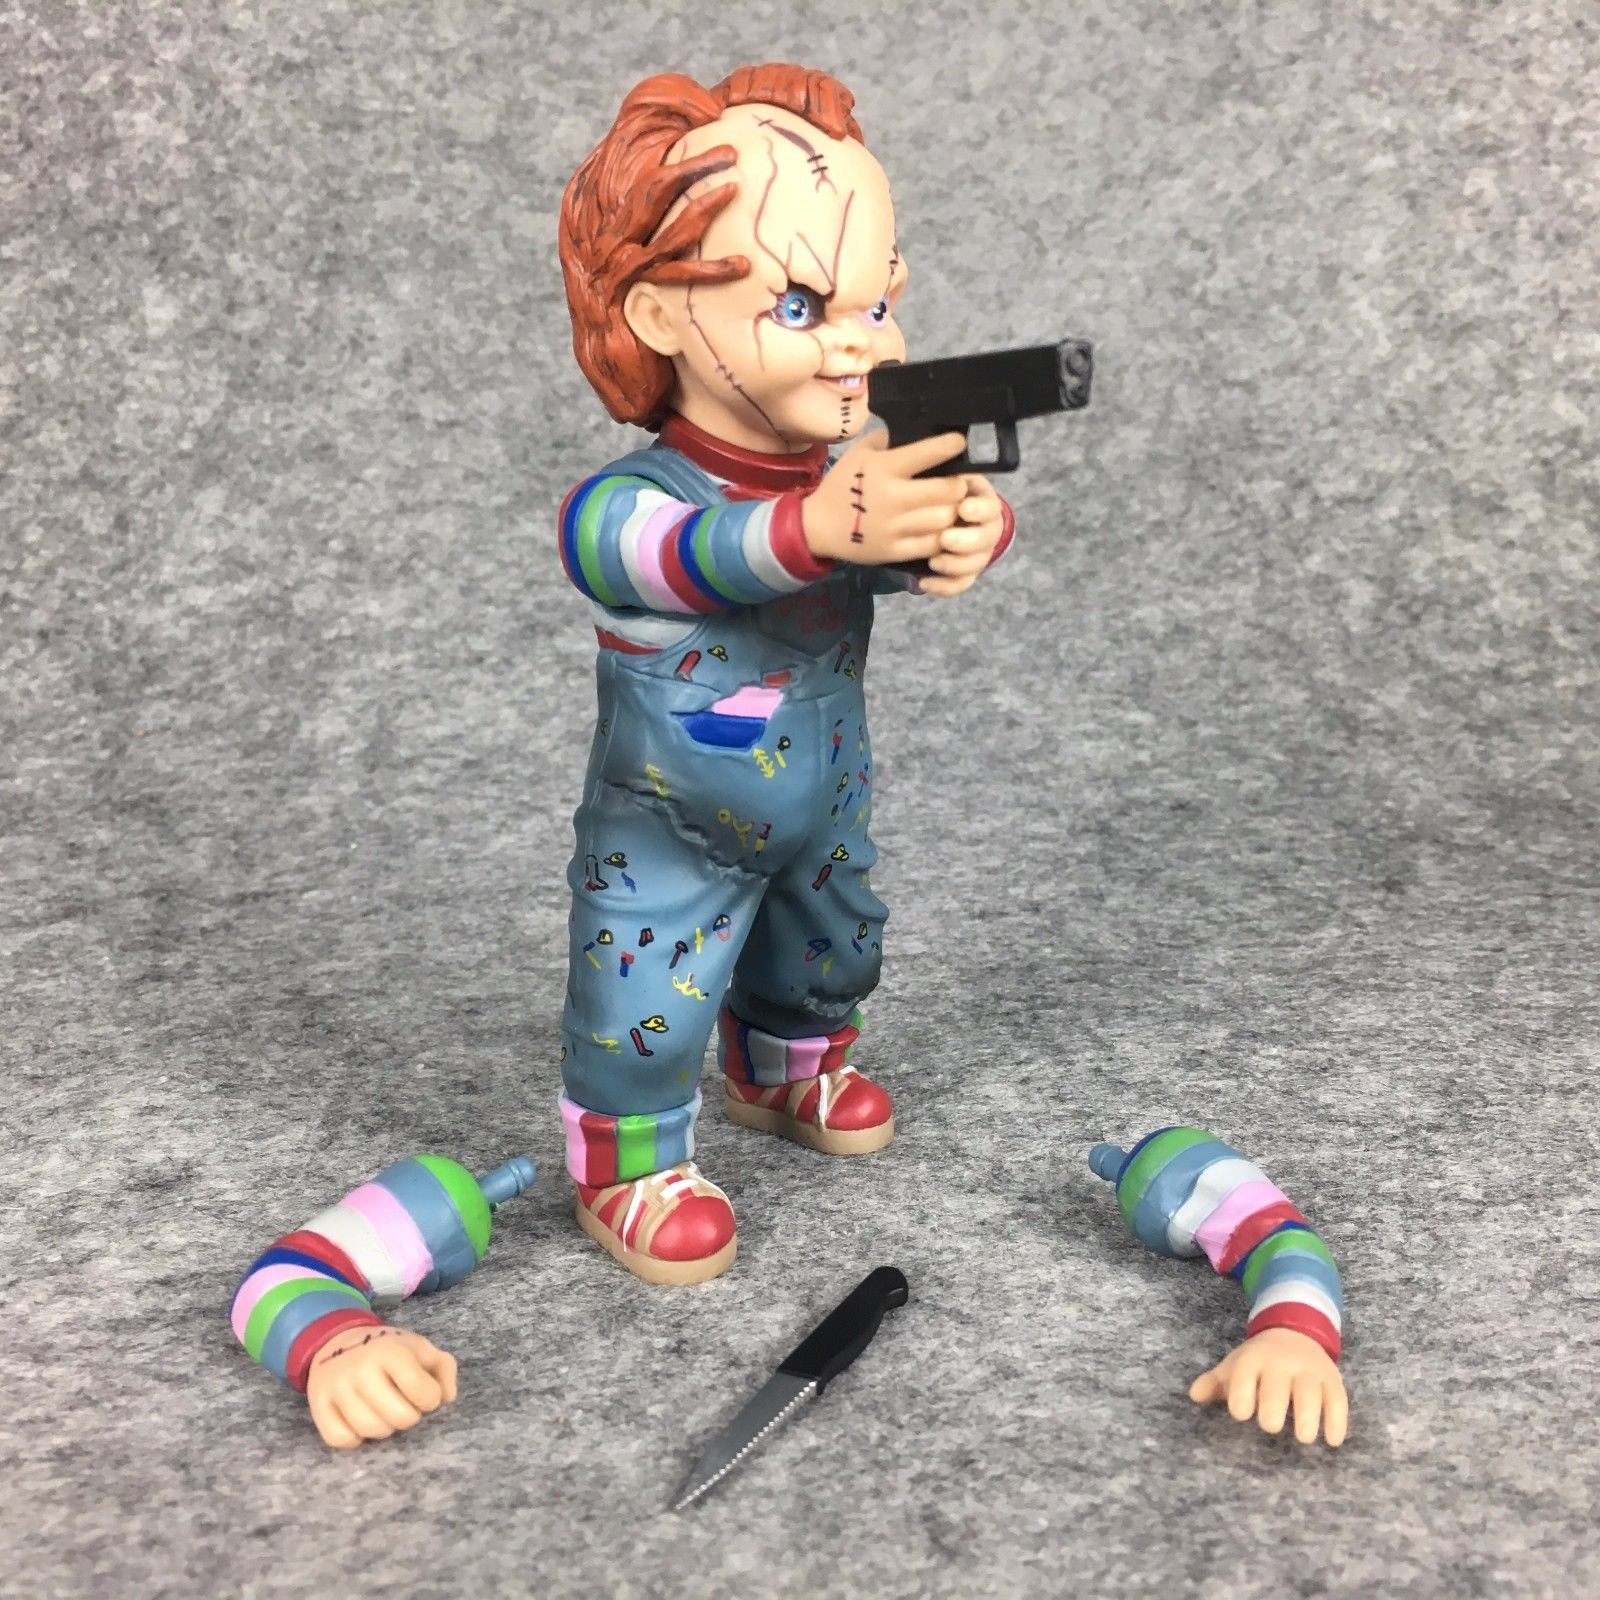 Toys R Us Chucky : Child s play chucky quot scale sneering good guy action